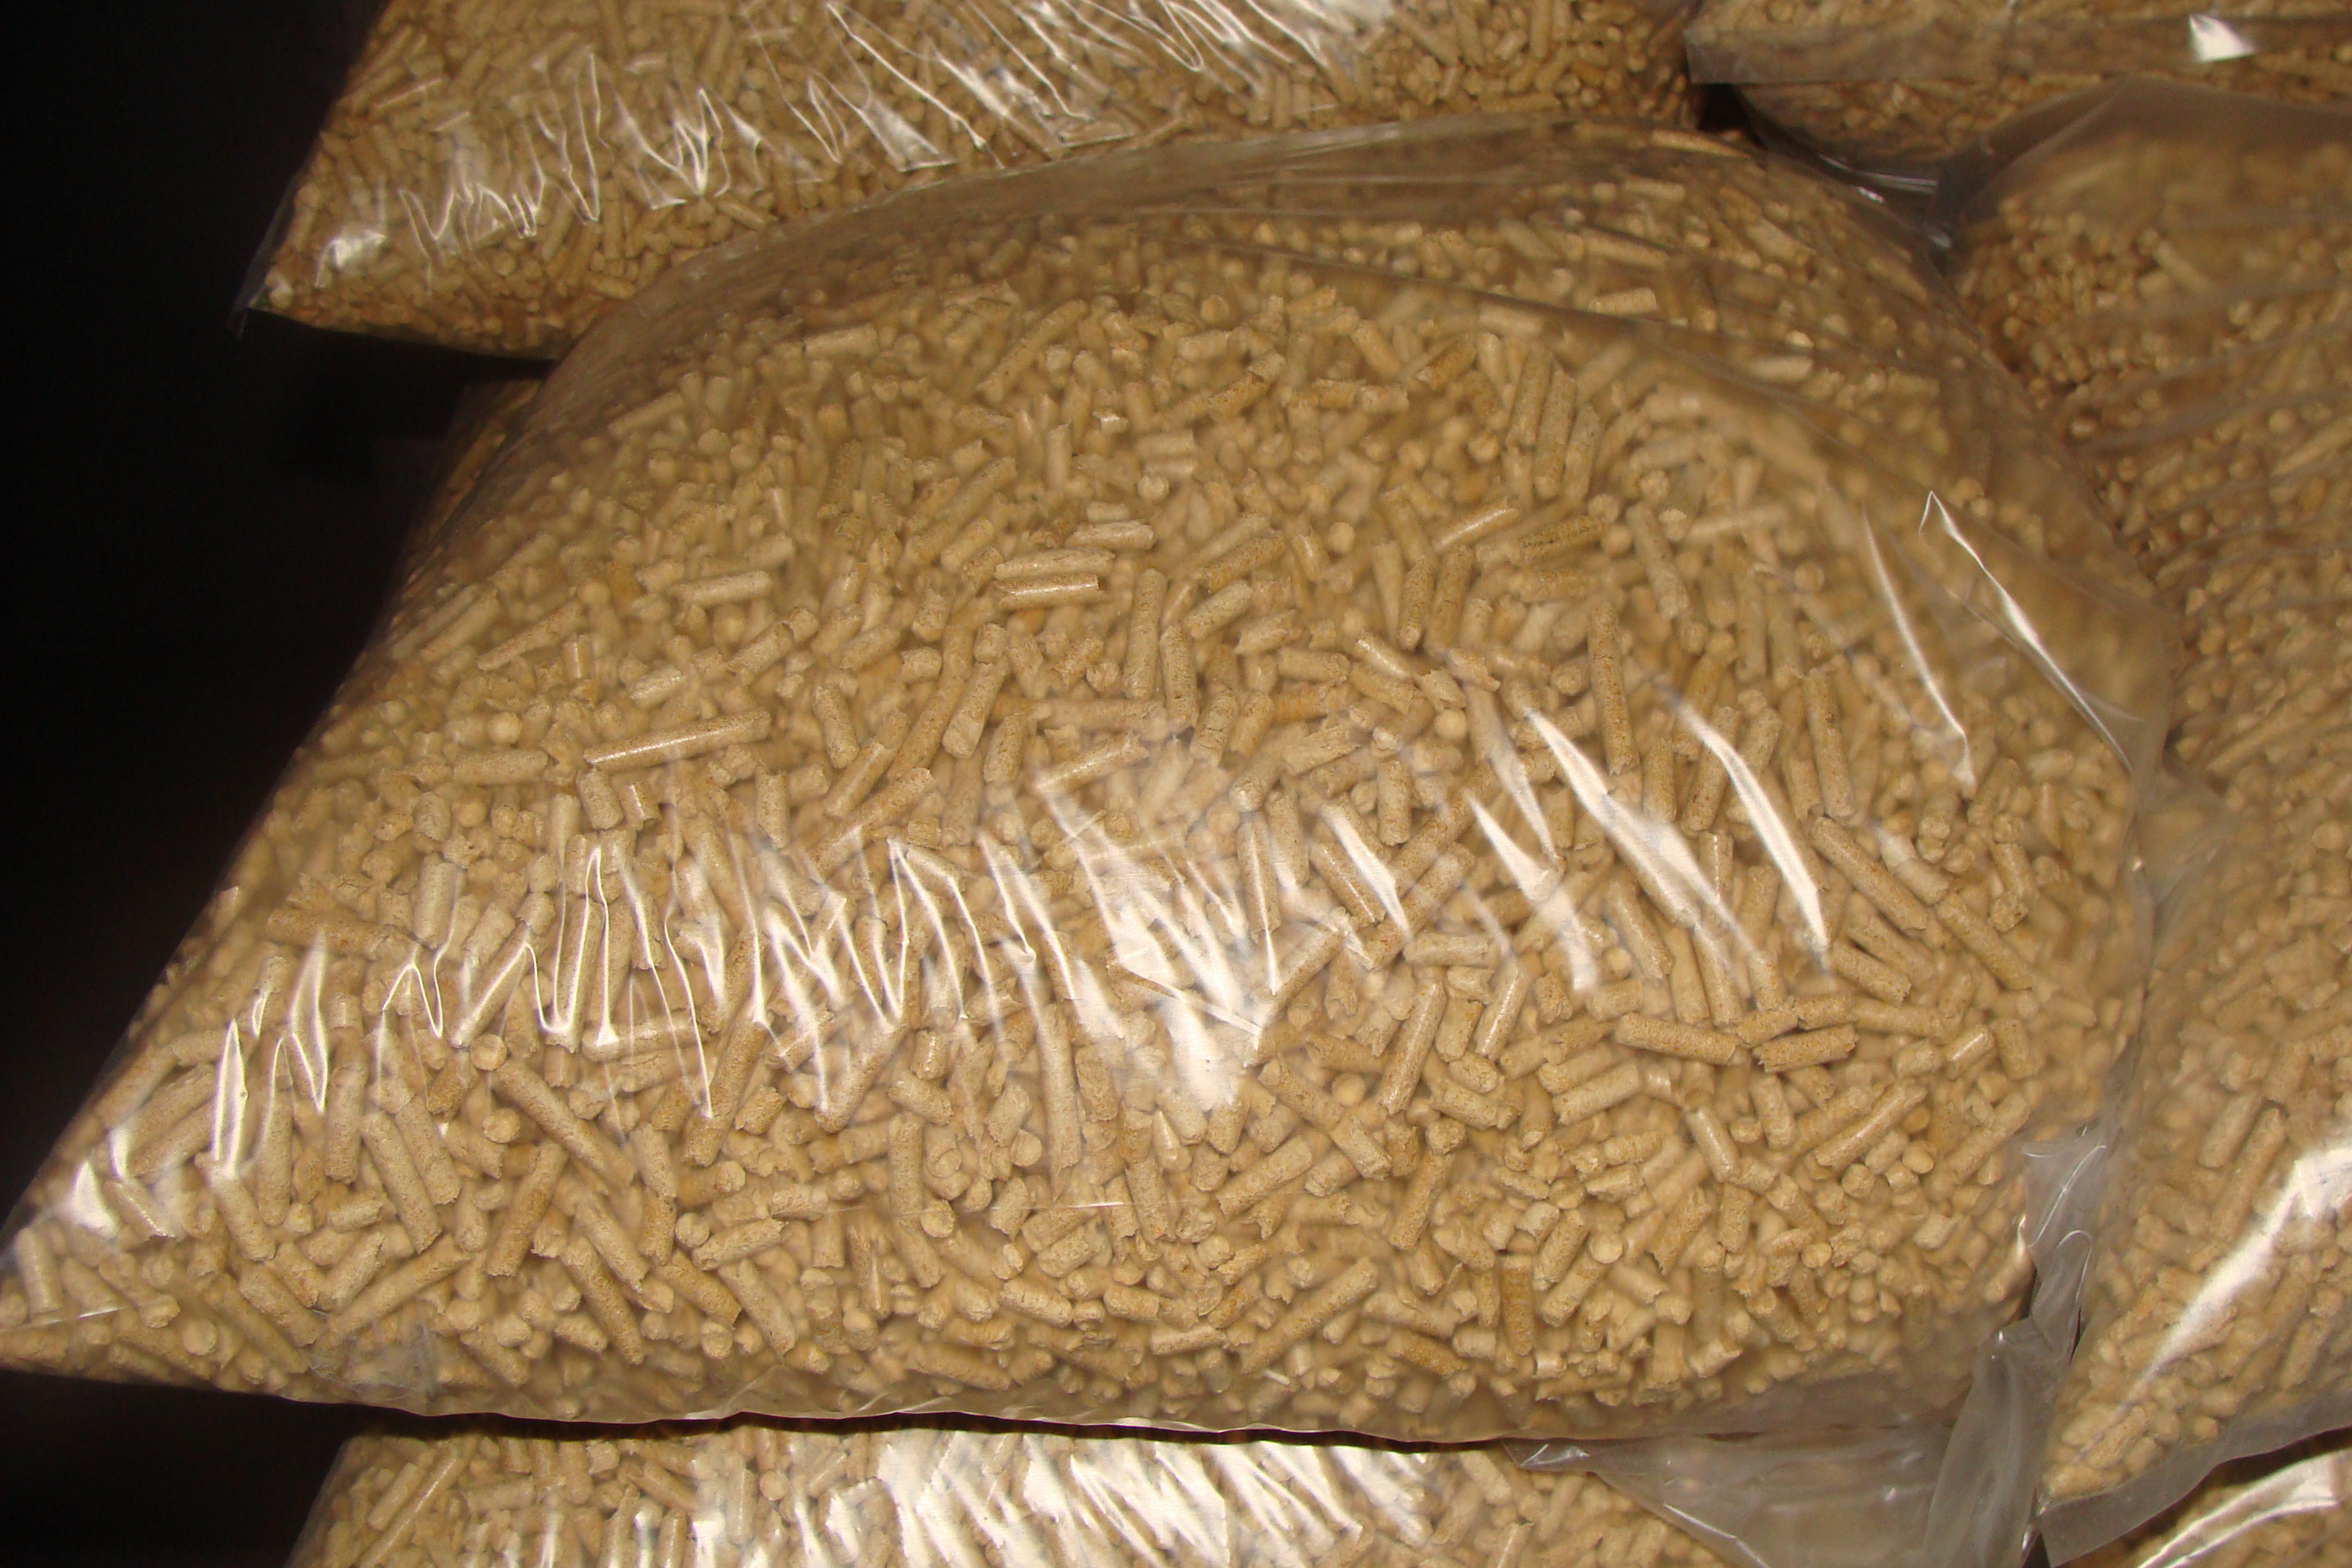 Russian wood pellet production expected to rise driven by